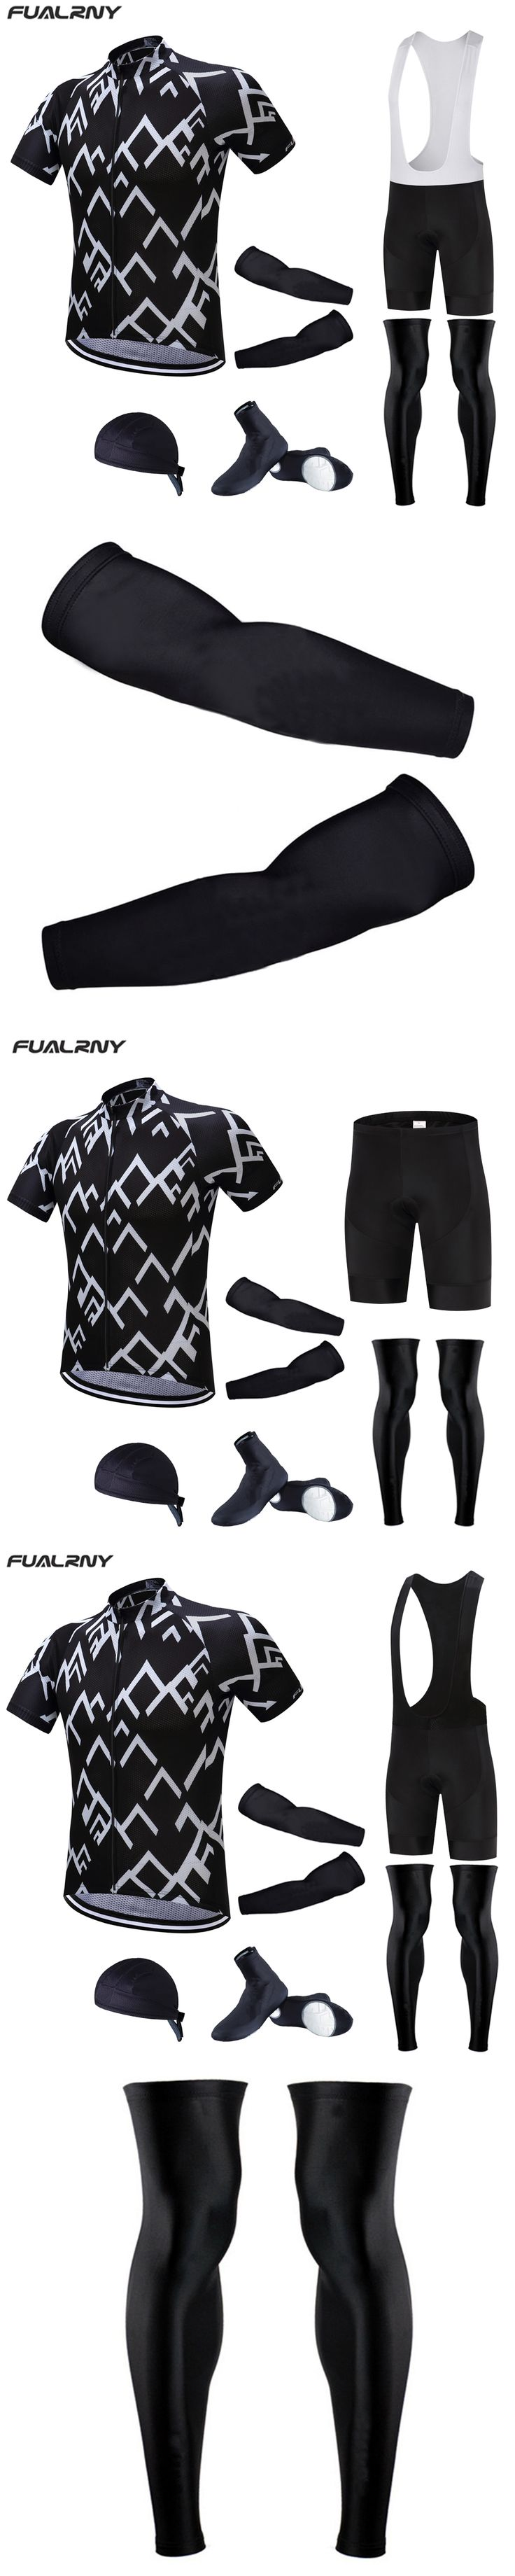 Fualrny 2017 Cycling Pro Team Cycling jersey wear Clothing men's maillot ropa bici ciclismo mtb bike Bicycle clothing full set